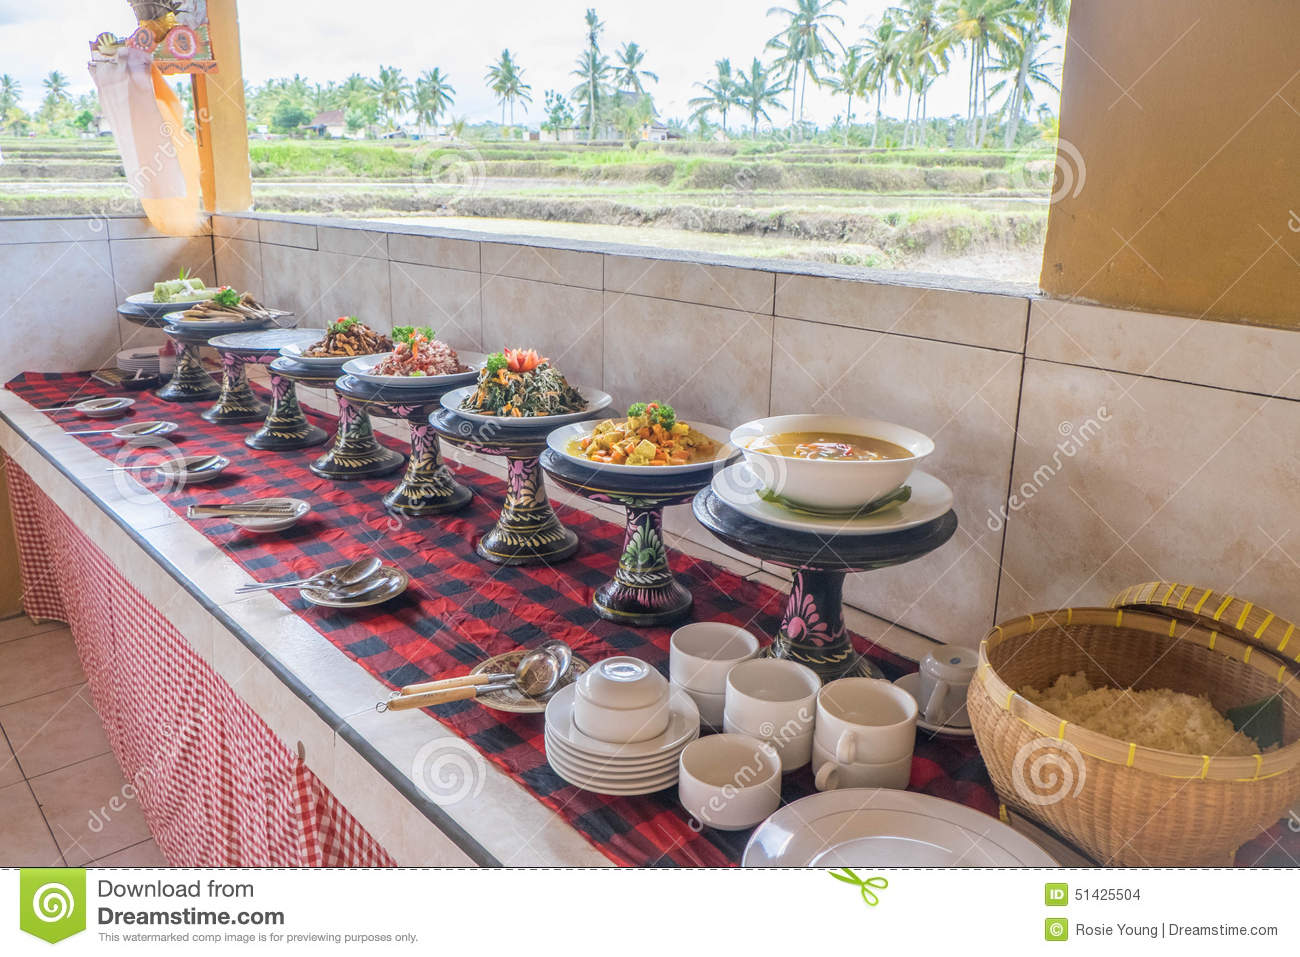 Indonesian buffet & Indonesian buffet stock photo. Image of buffet sate - 51425504